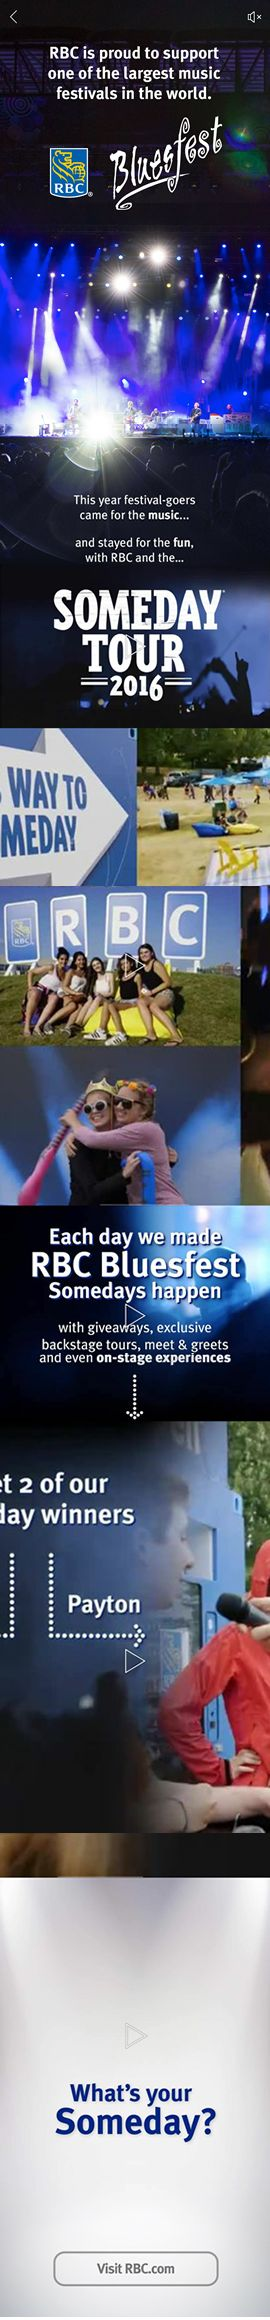 RBC promotes their involvement with RBC Bluesfest in Ottawa, Canada. This is stitched together from a number of screenshots from a long, scrolling mobile Facebook campaign that included video and panoramic photos.